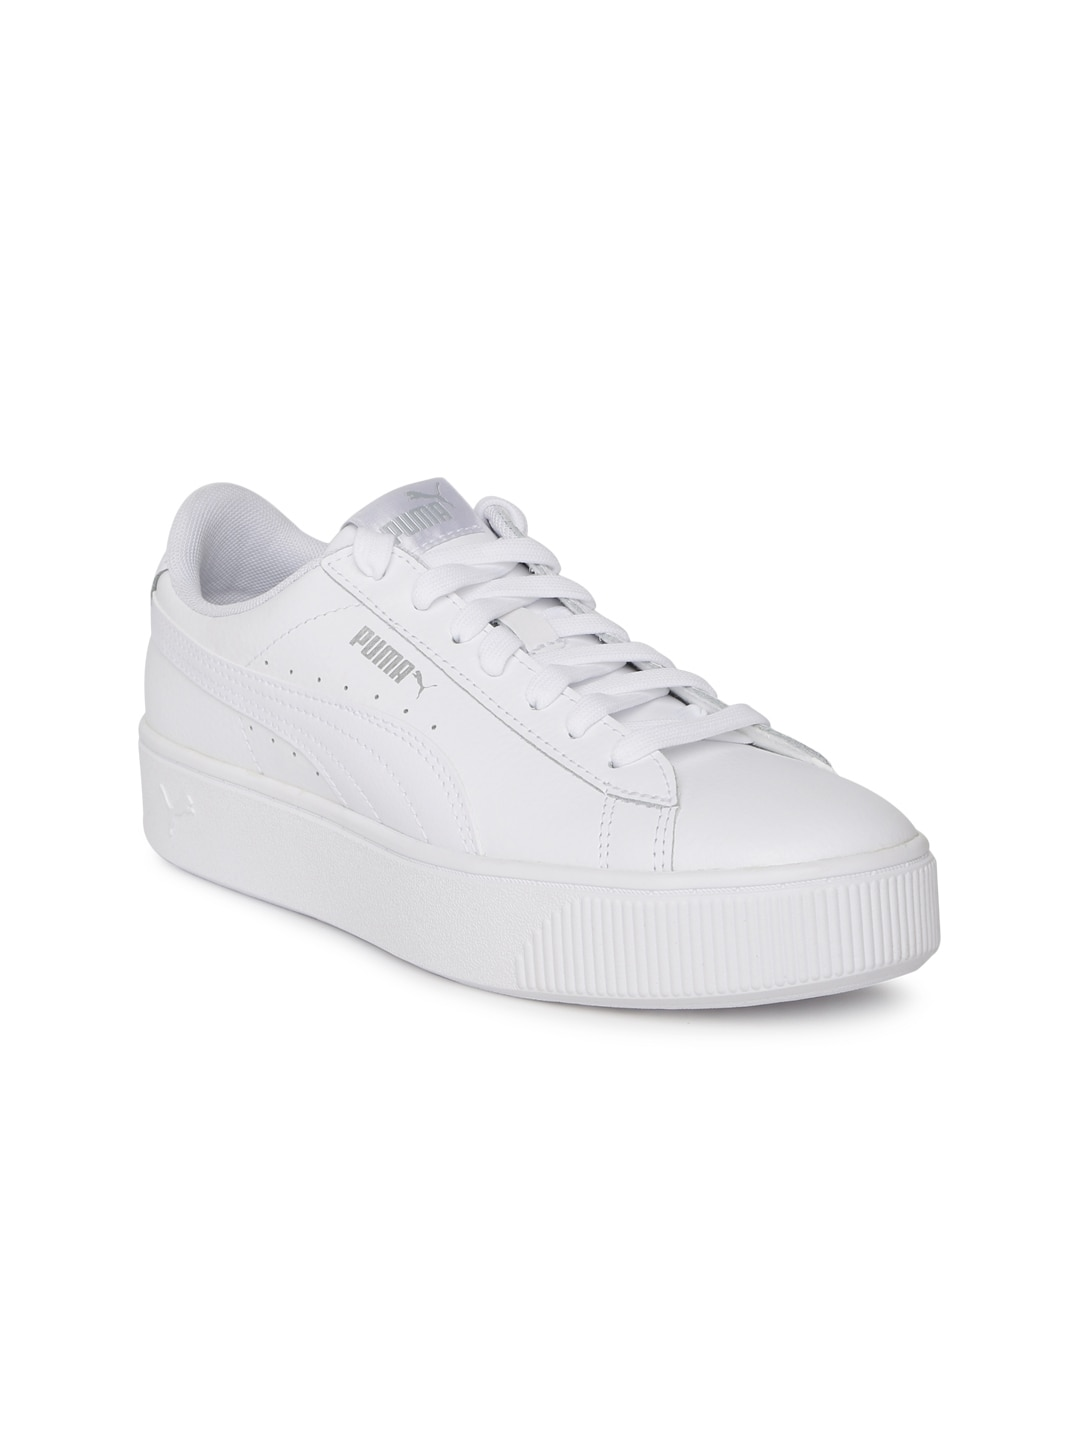 5bb048d3b98a Puma® - Buy Orignal Puma products in India